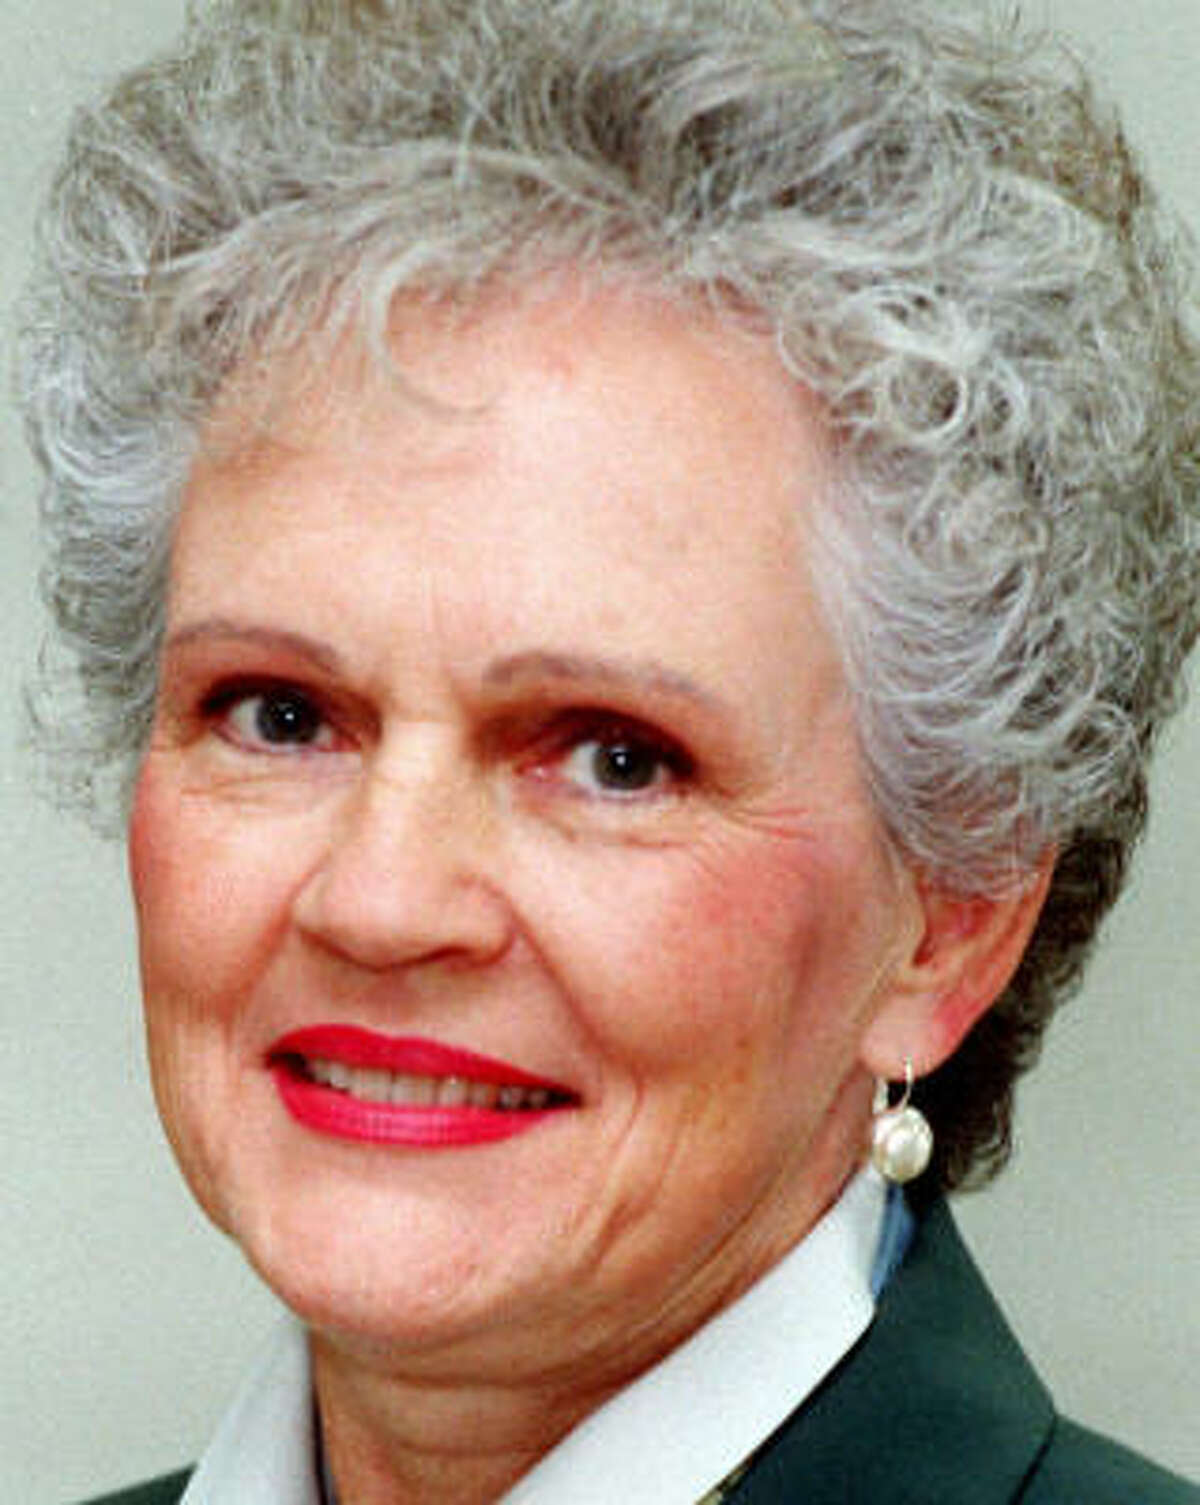 Rep. Betty Brown, R-Terrell, made the remark during House testimony on Tuesday.